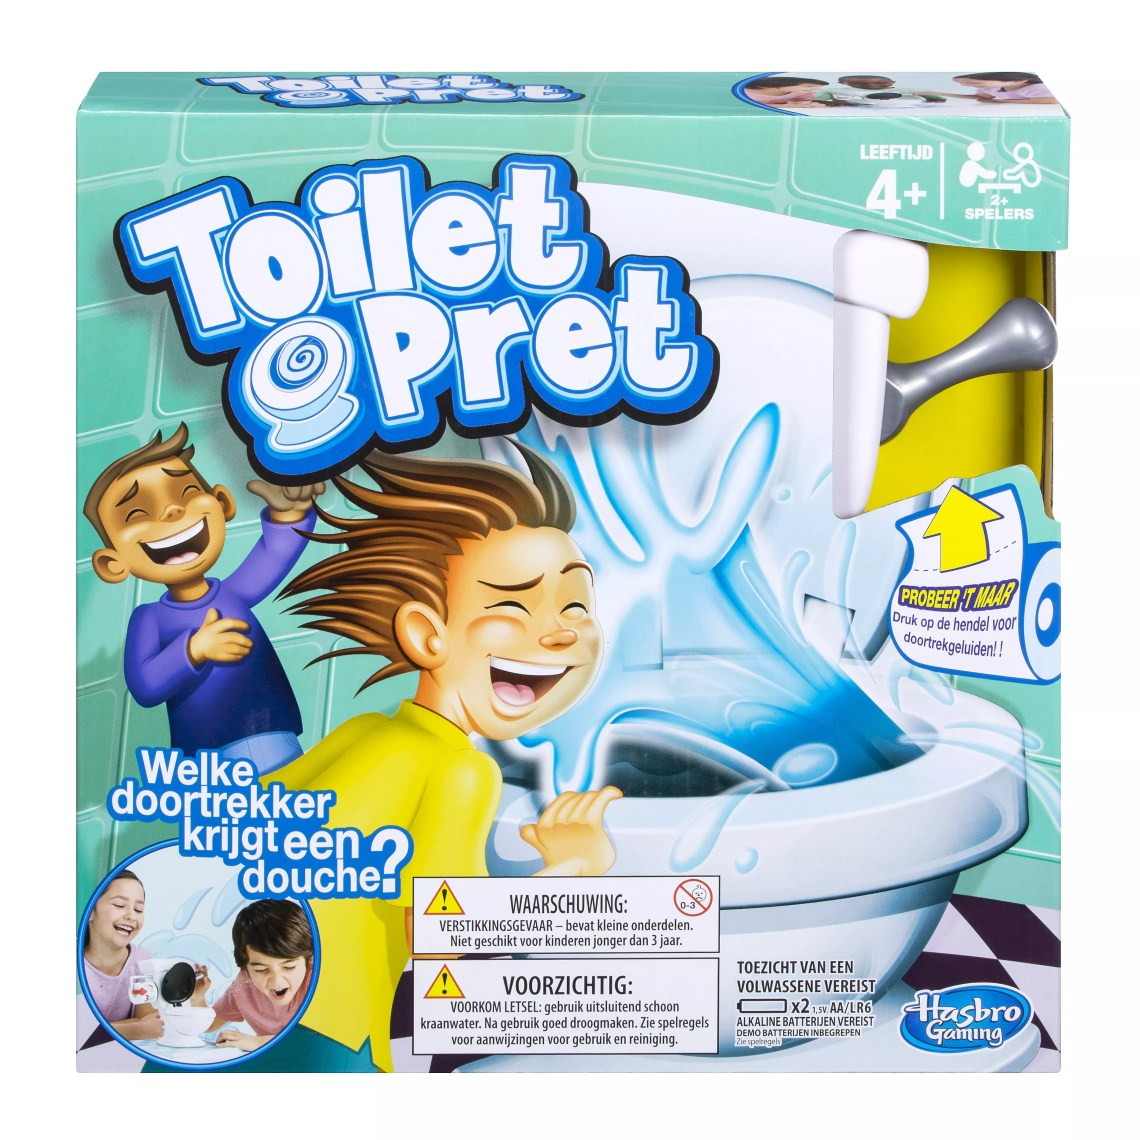 review toiletpret